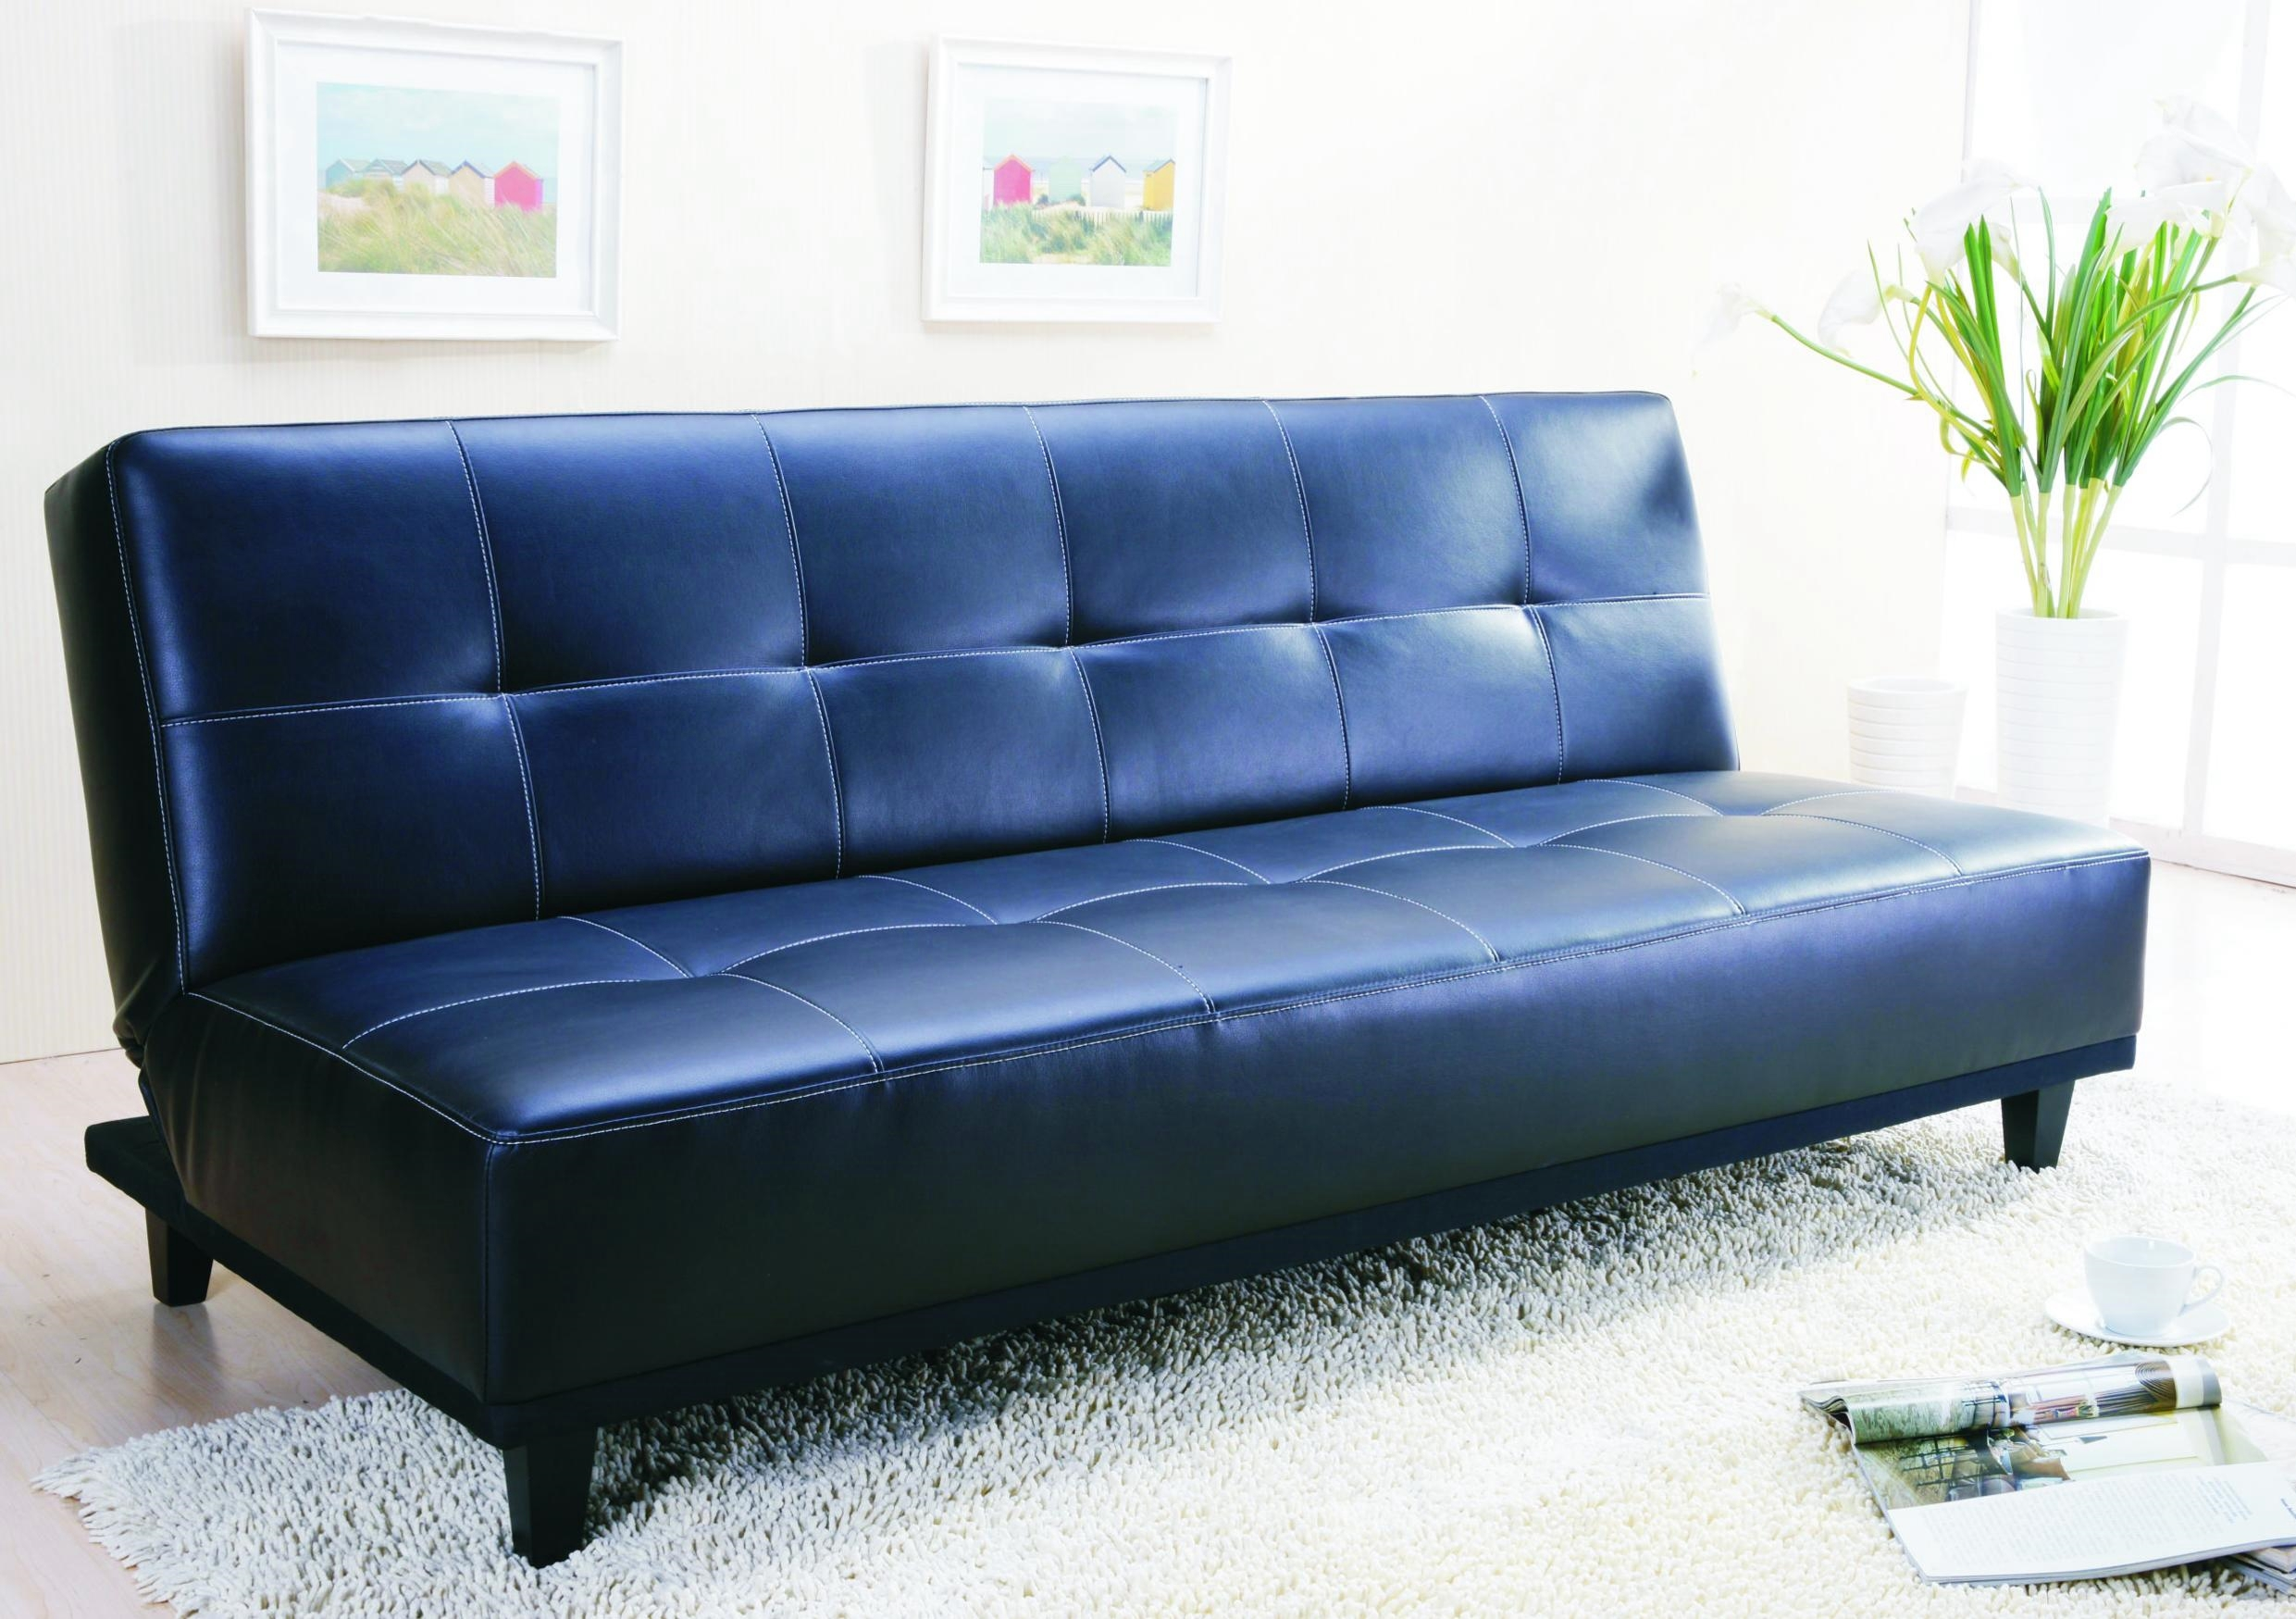 53 Blue Sofas Snooze Velvet Sofa Cornflower Blue Contemporary With Blue Sofa Chairs (Image 1 of 15)